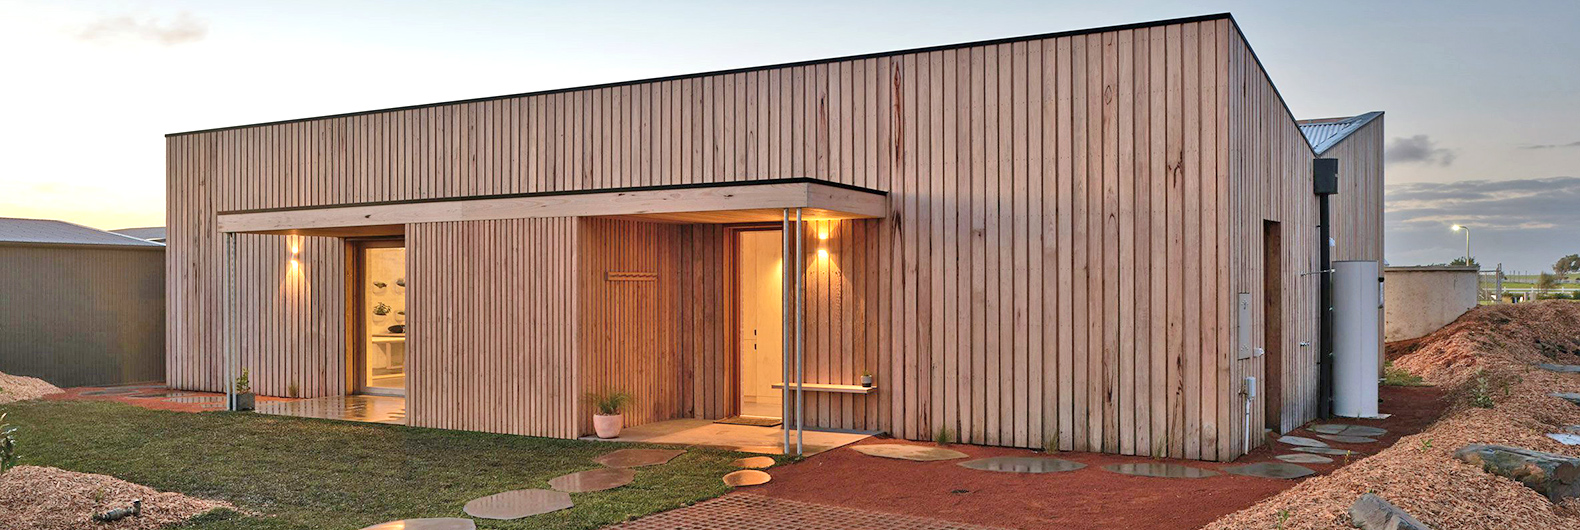 Australia's first carbon-positive and zero-waste home is built of non-toxic materials